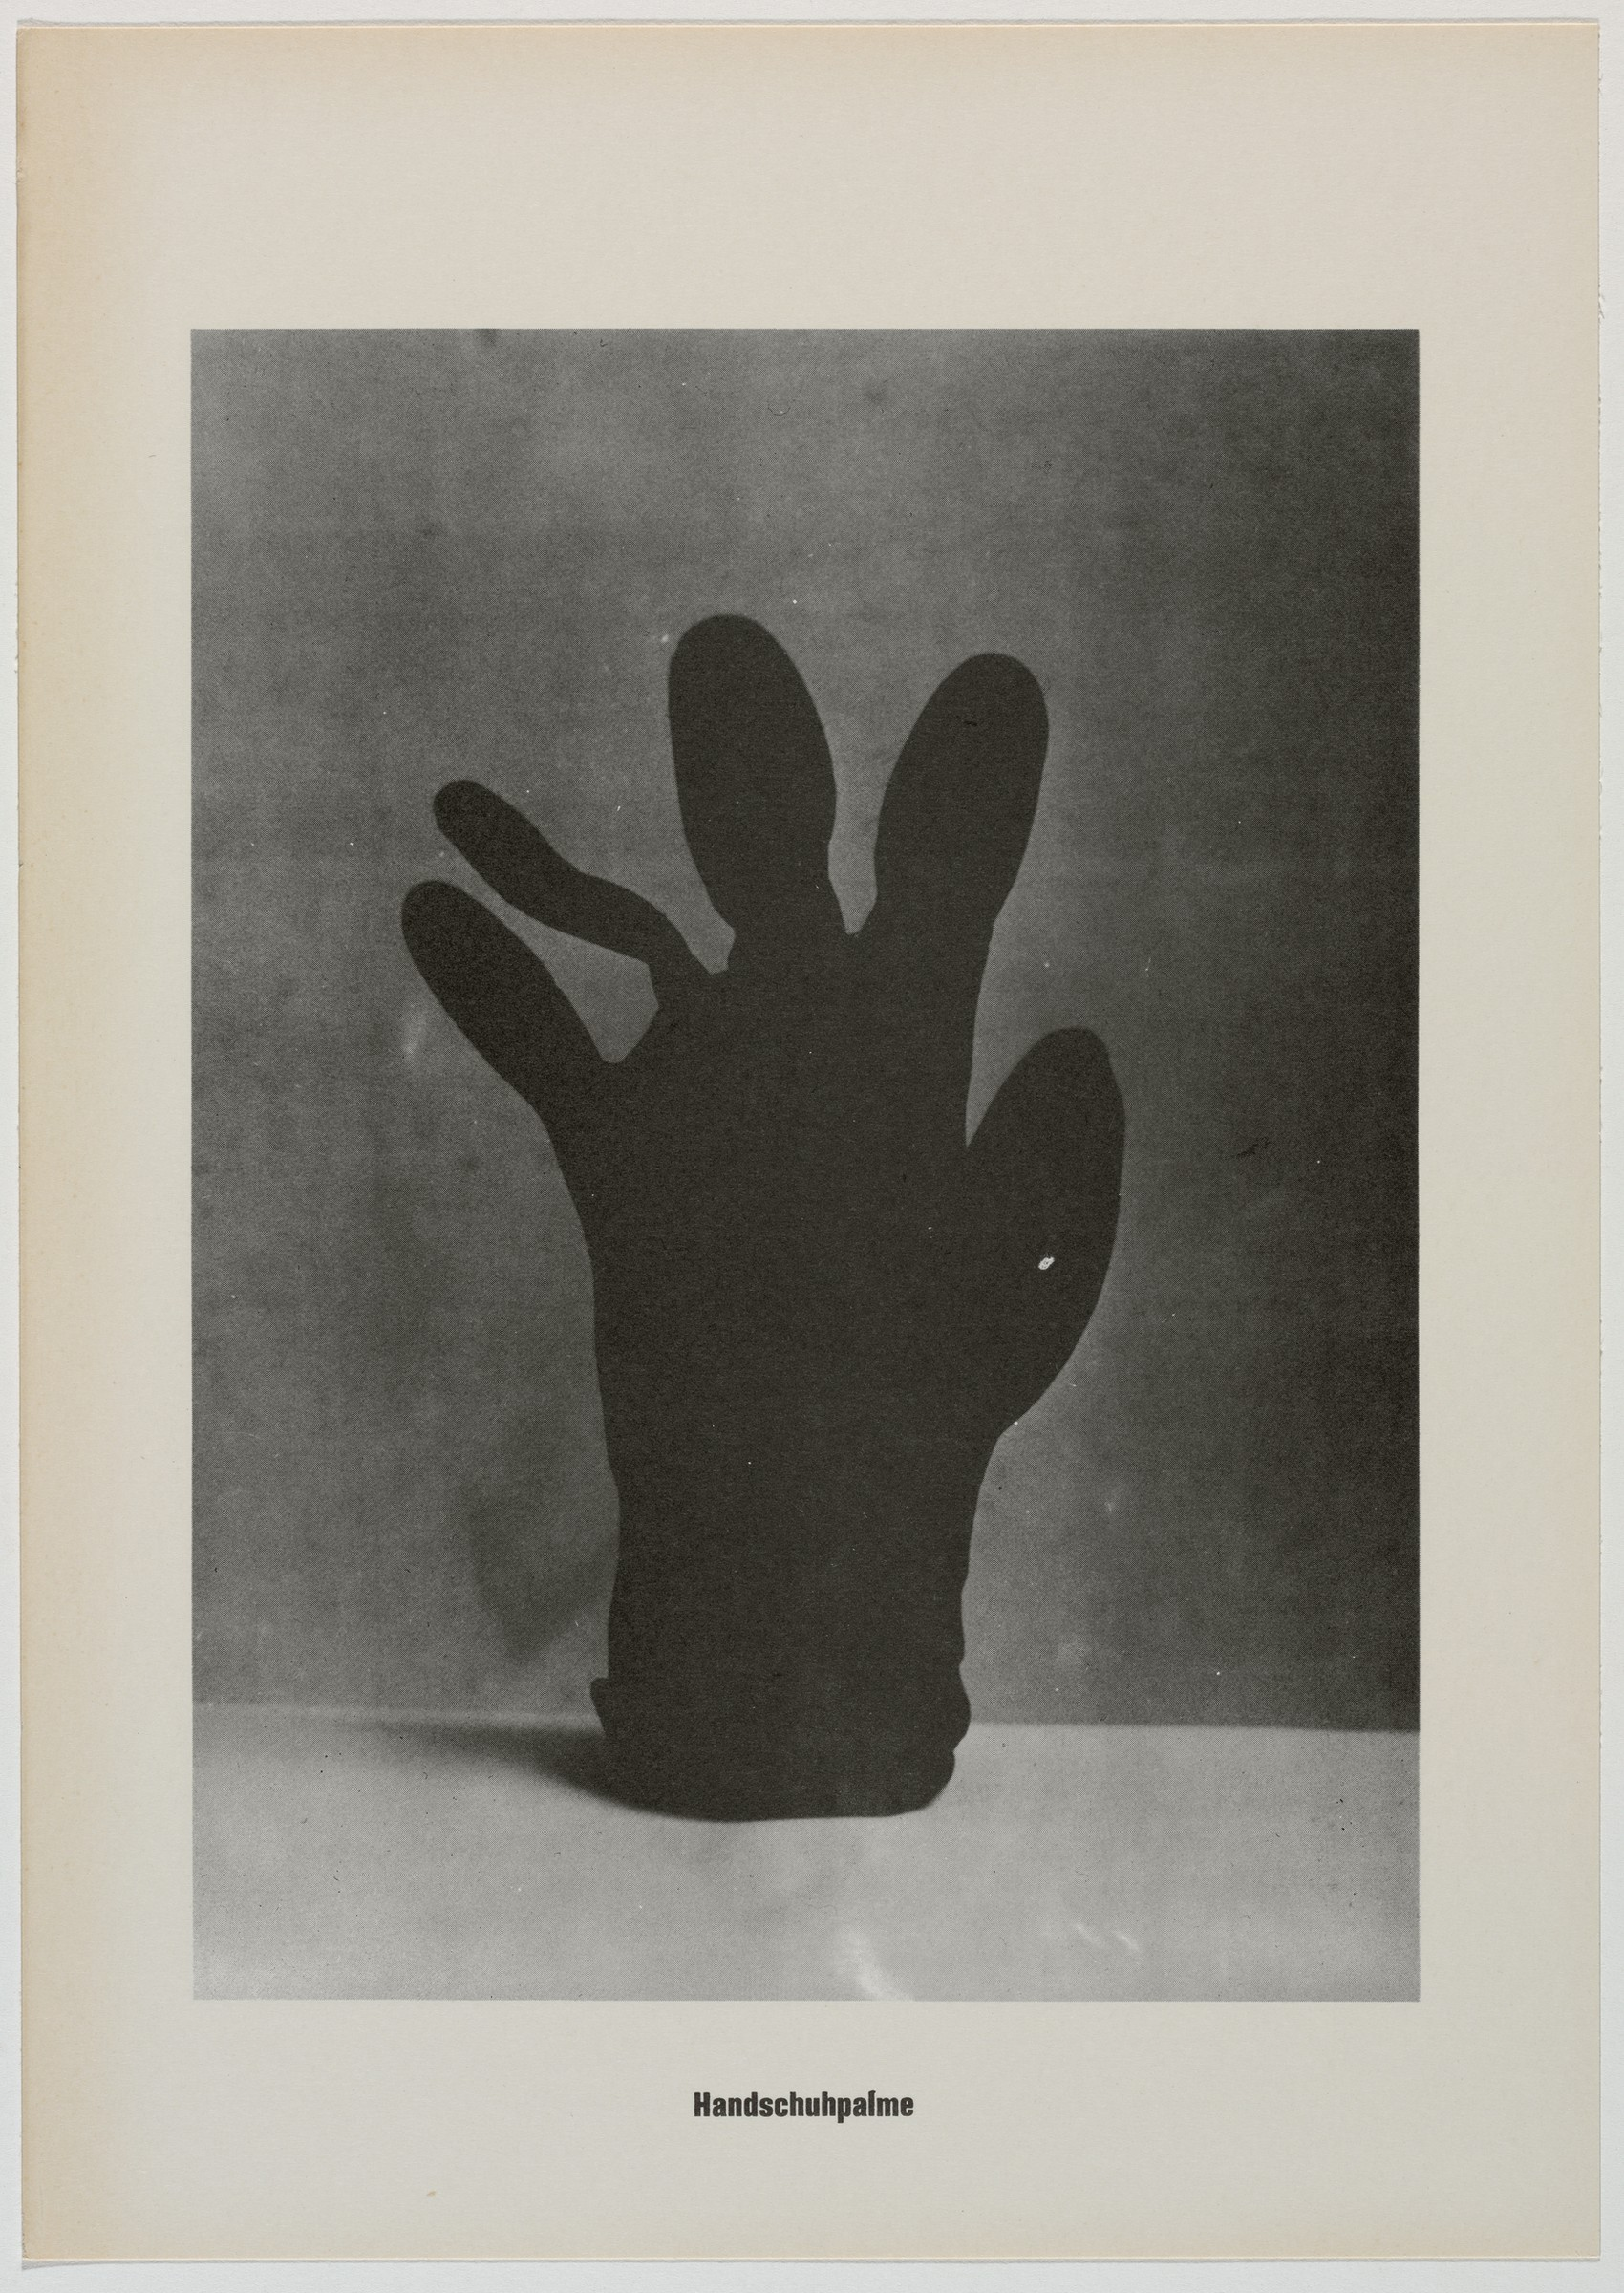 """This black and white lithograph shows a black glove on a light foreground. The fingers and thumb are spread out and slightly twisted to form the shape of a palm tree. Text at the bottom reads """"Handschuhpalme."""""""